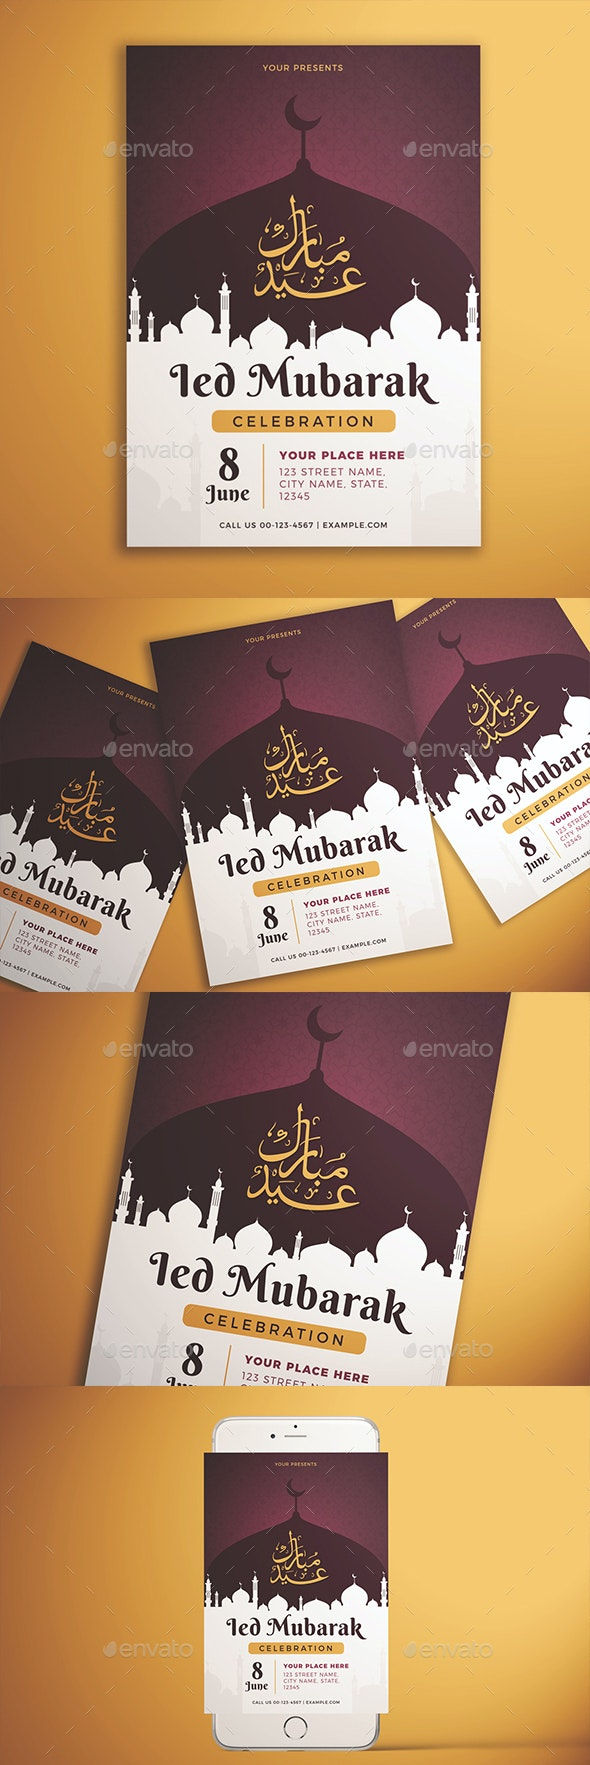 Ied Mubarak Celebration Flyer - Holidays Events